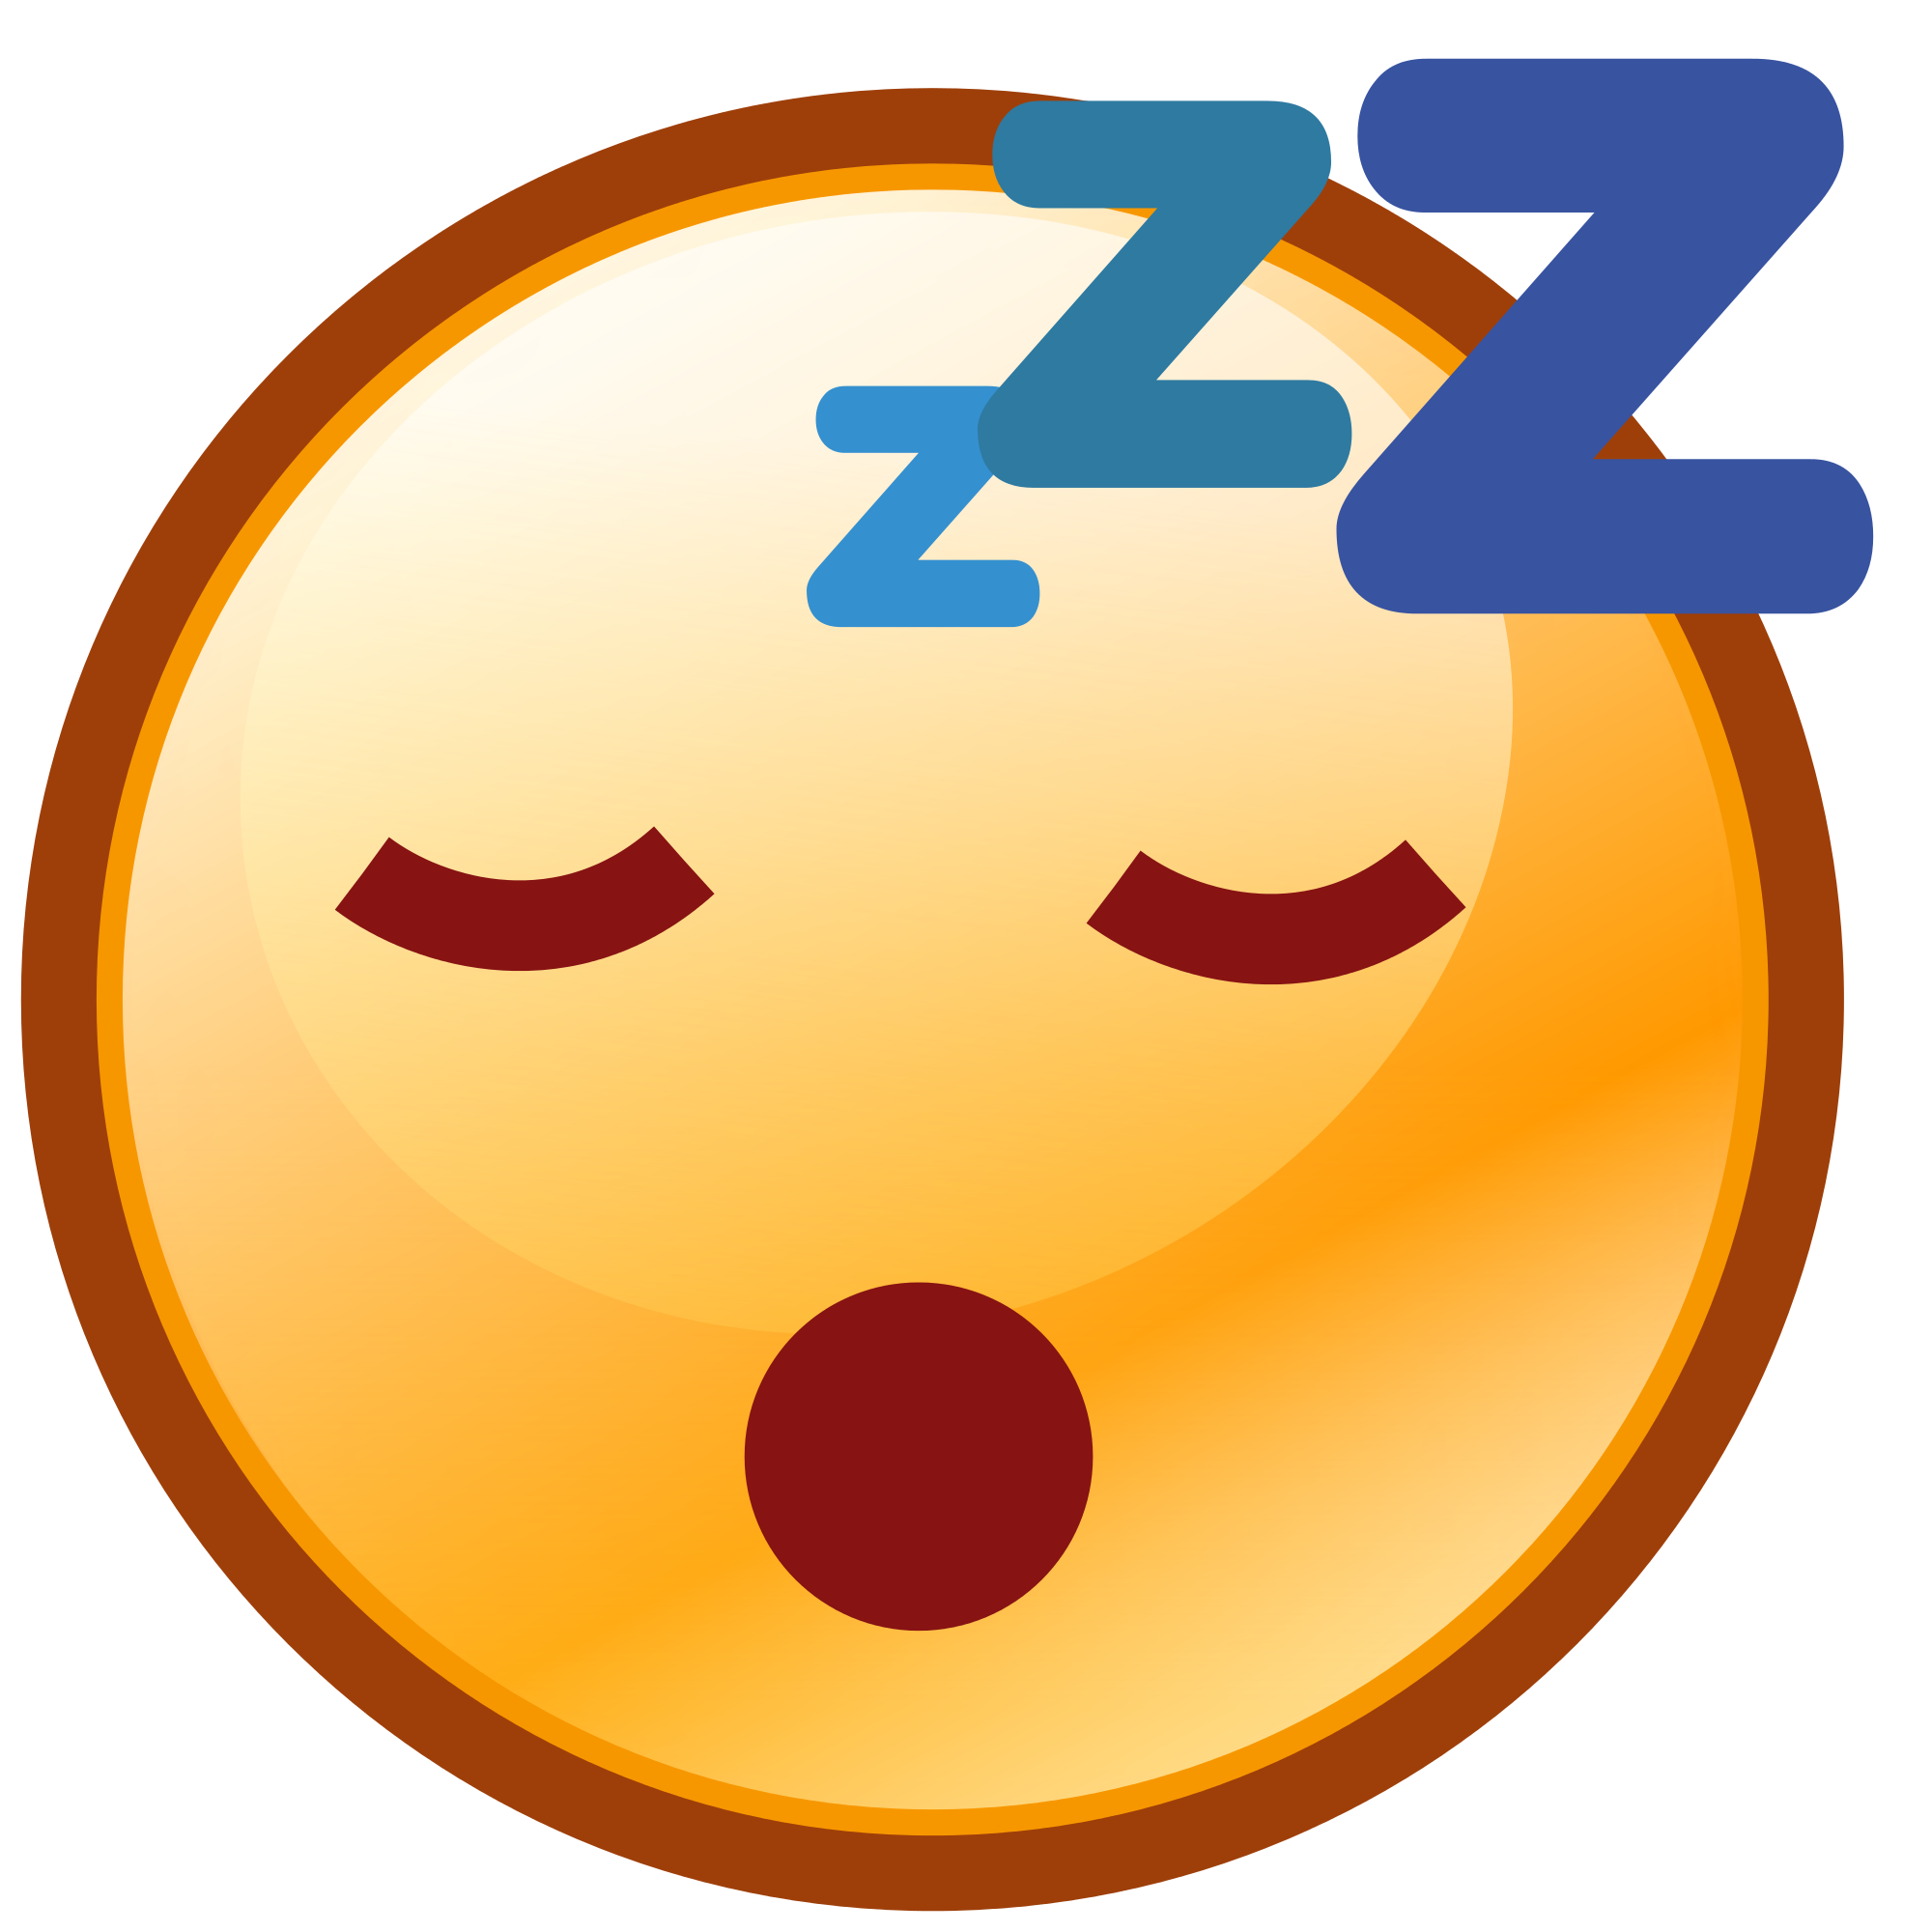 svg royalty free sleep transparent file #115685436